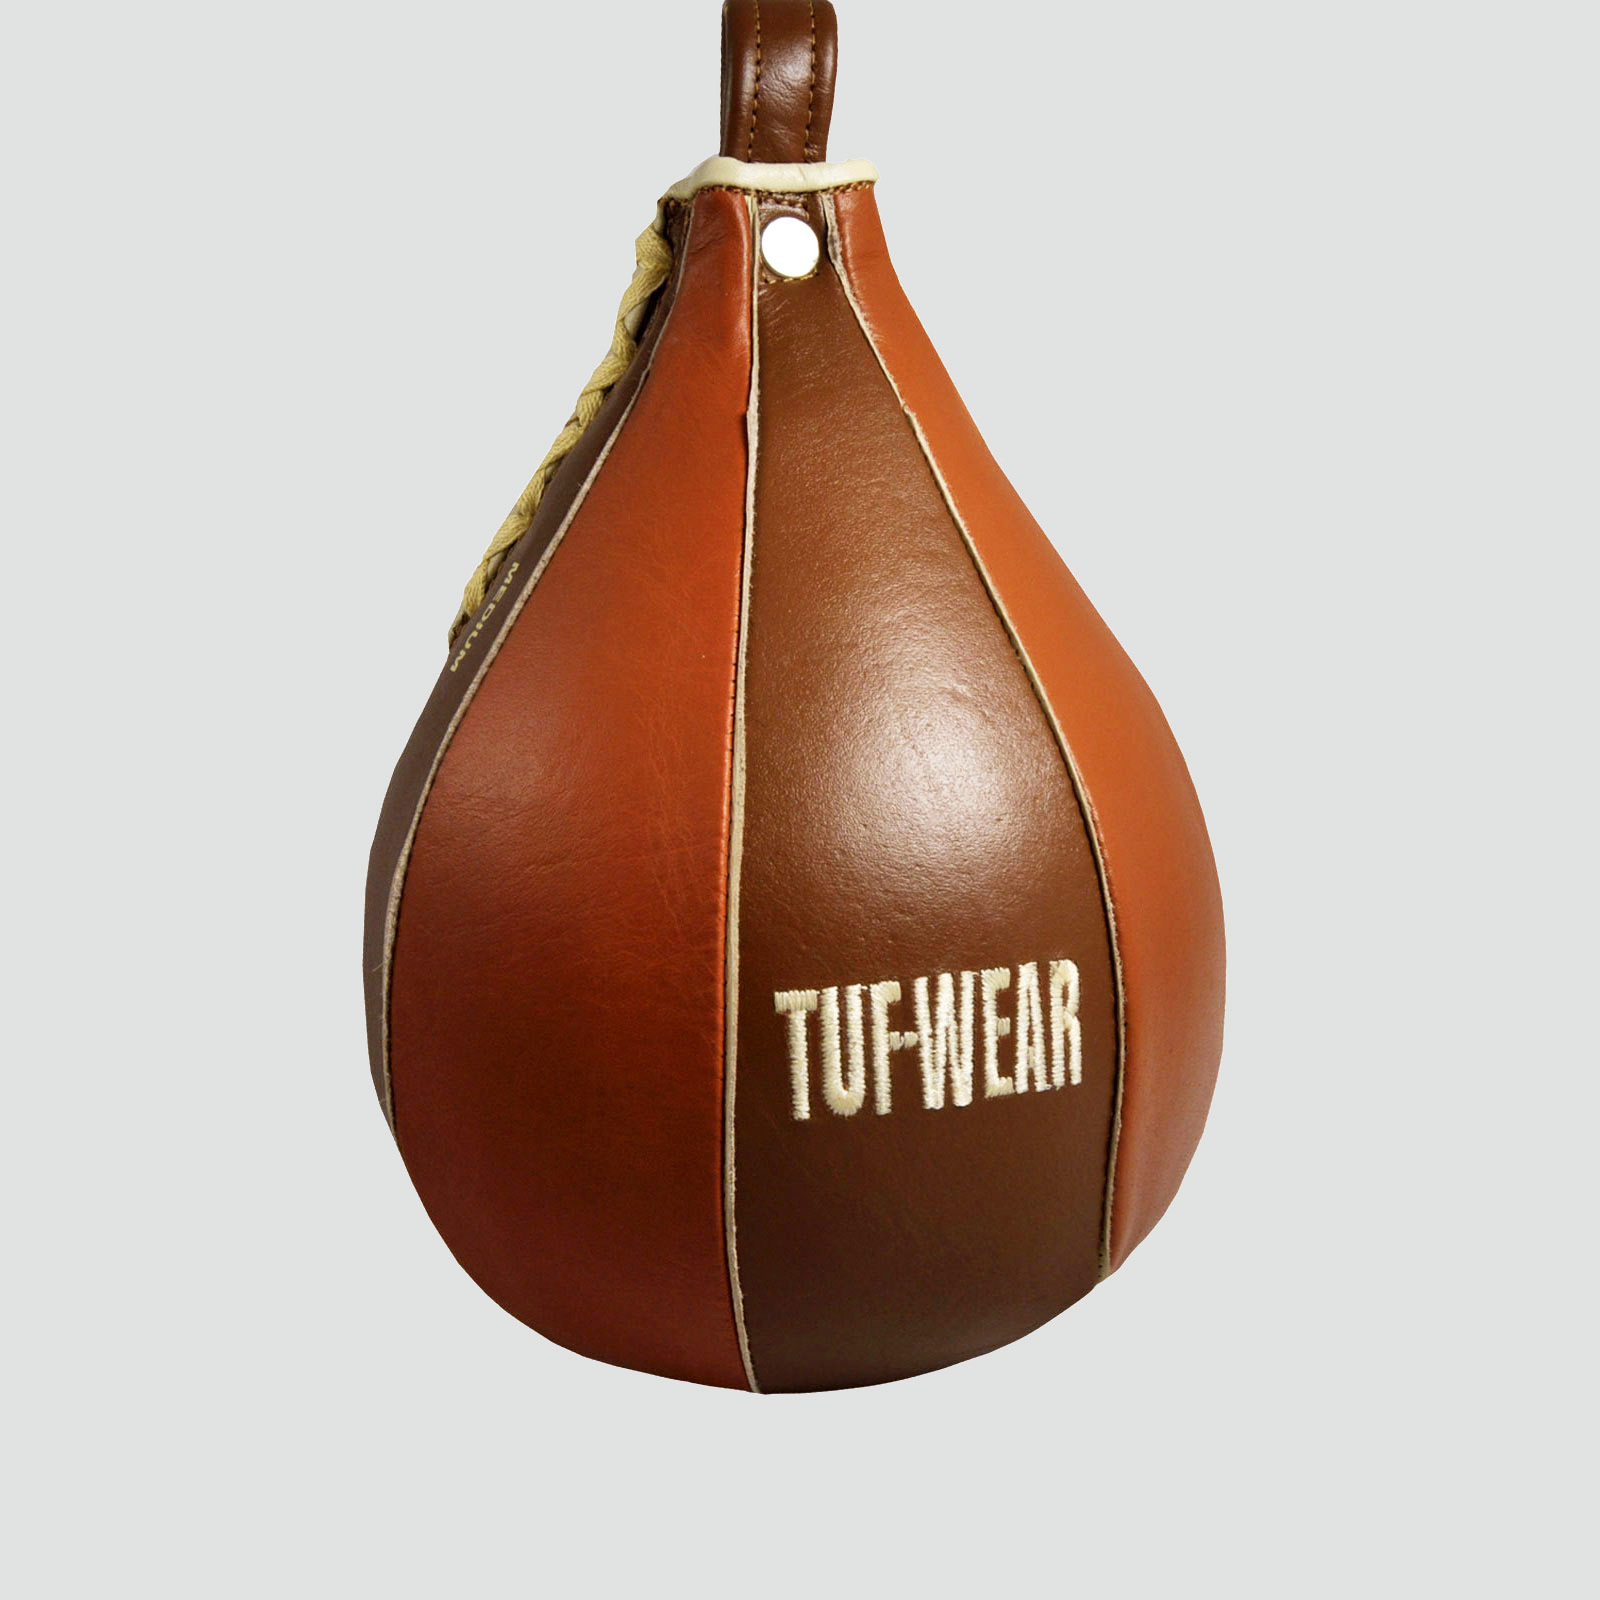 TUF WEAR BOXING CLASSIC BROWN LEATHER SPEED BALL